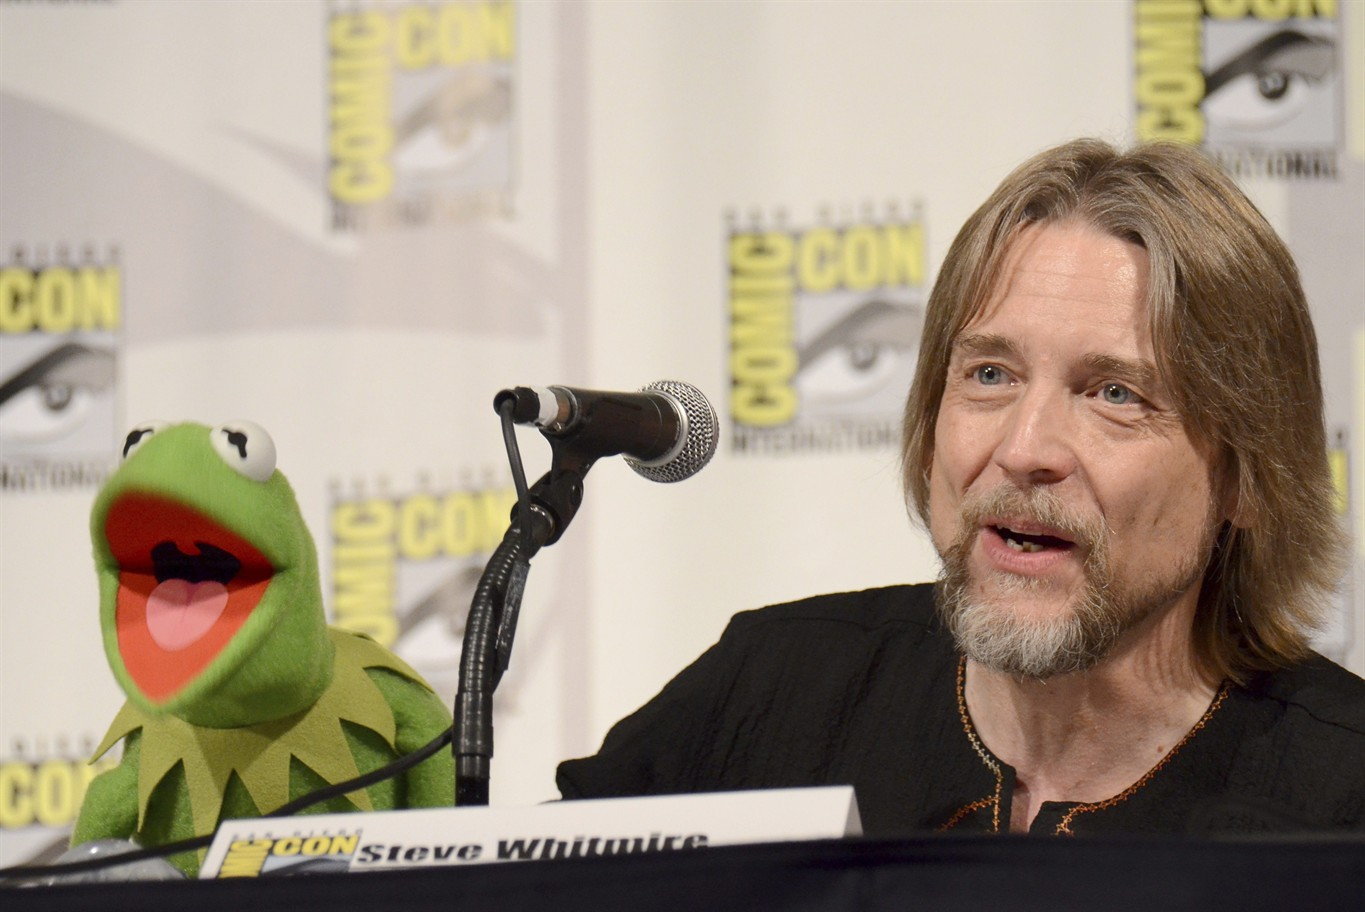 Kermit The Frog Voice Actor Steve Whitmire Is Devastated To Be Replaced